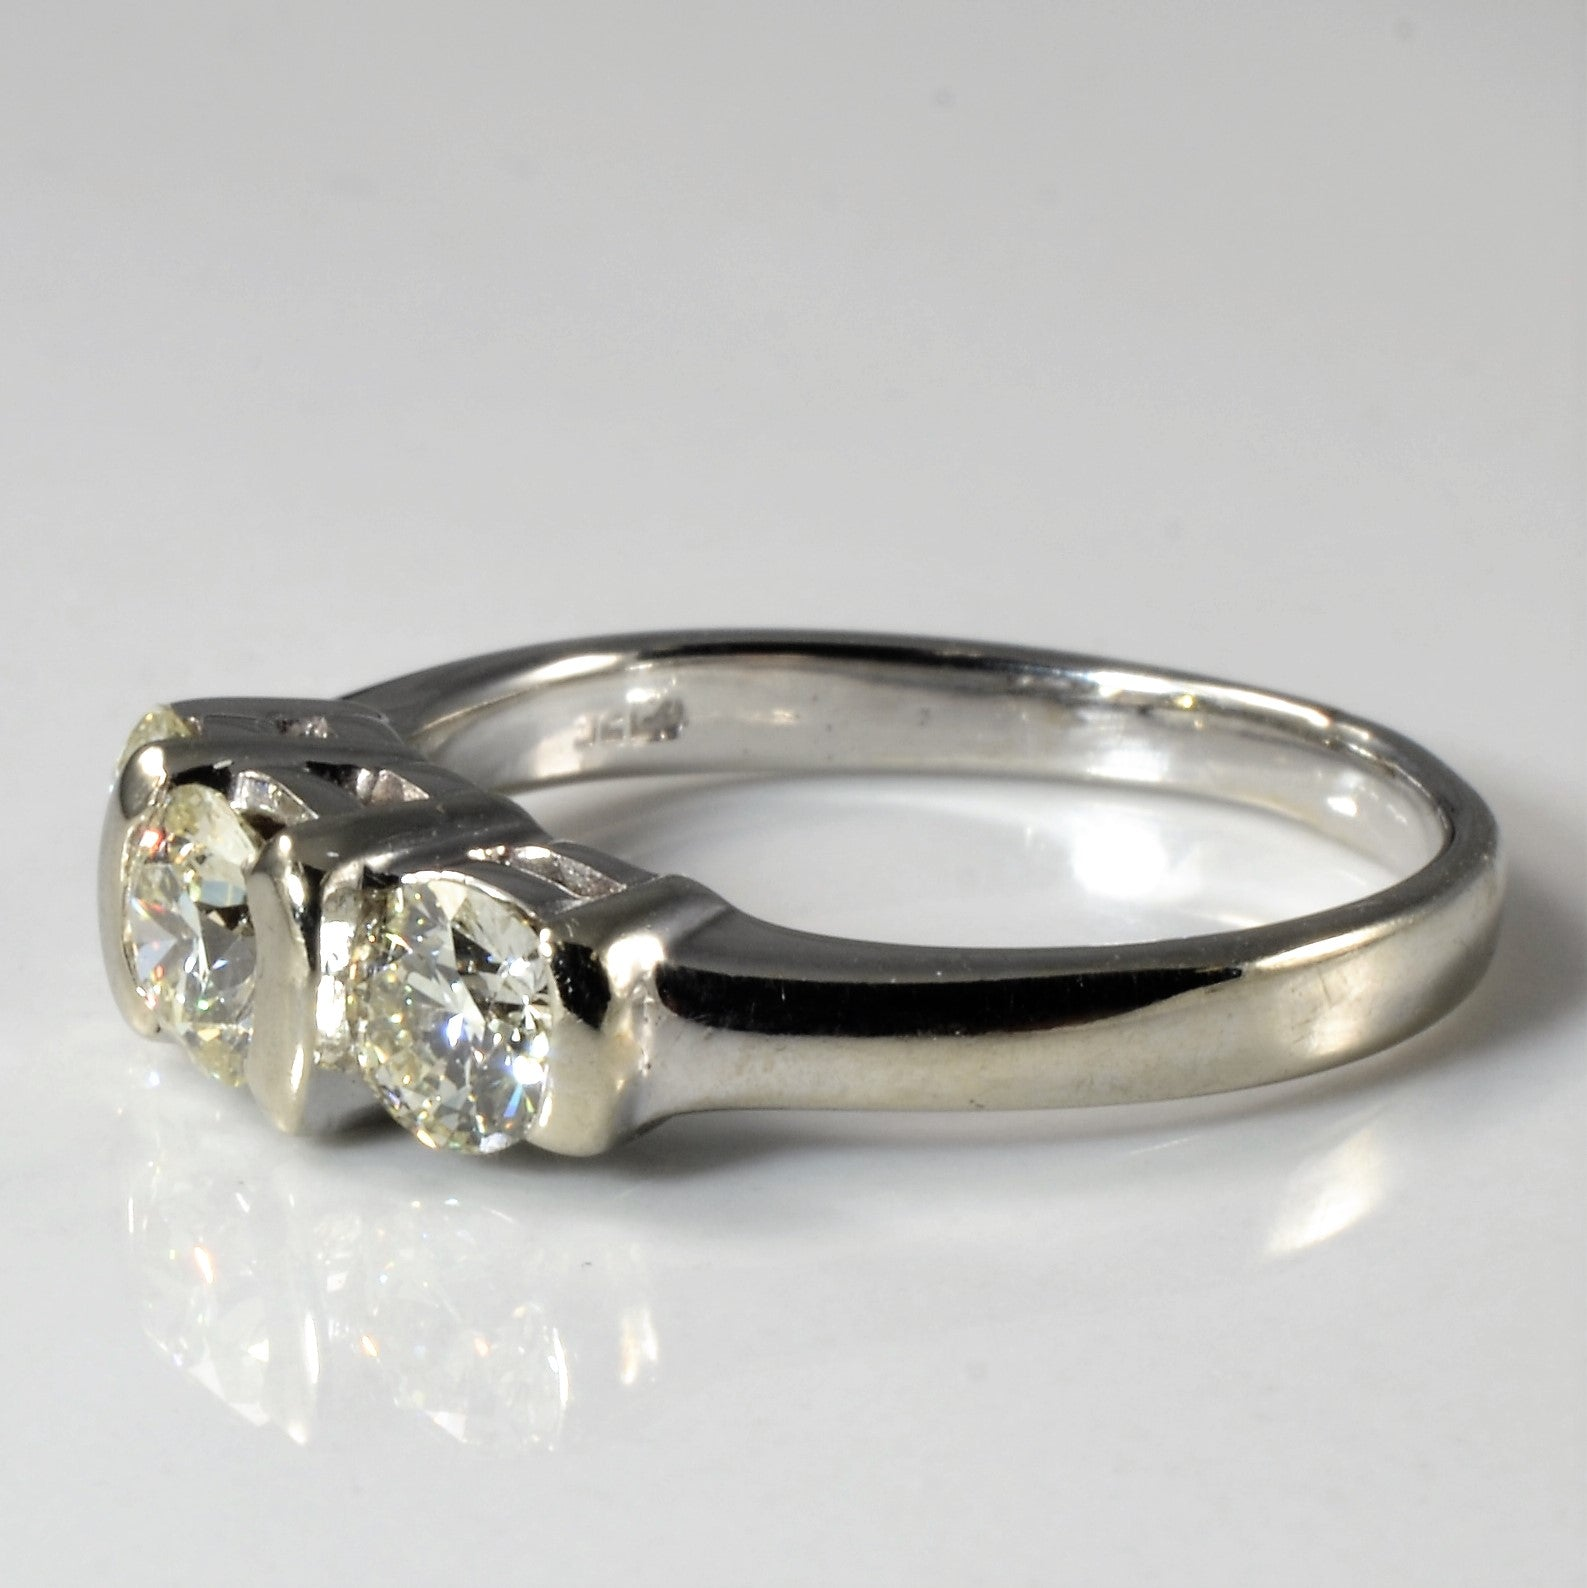 Three Stone Tension Set Engagement Ring | 1.00ctw | SZ 6.75 |